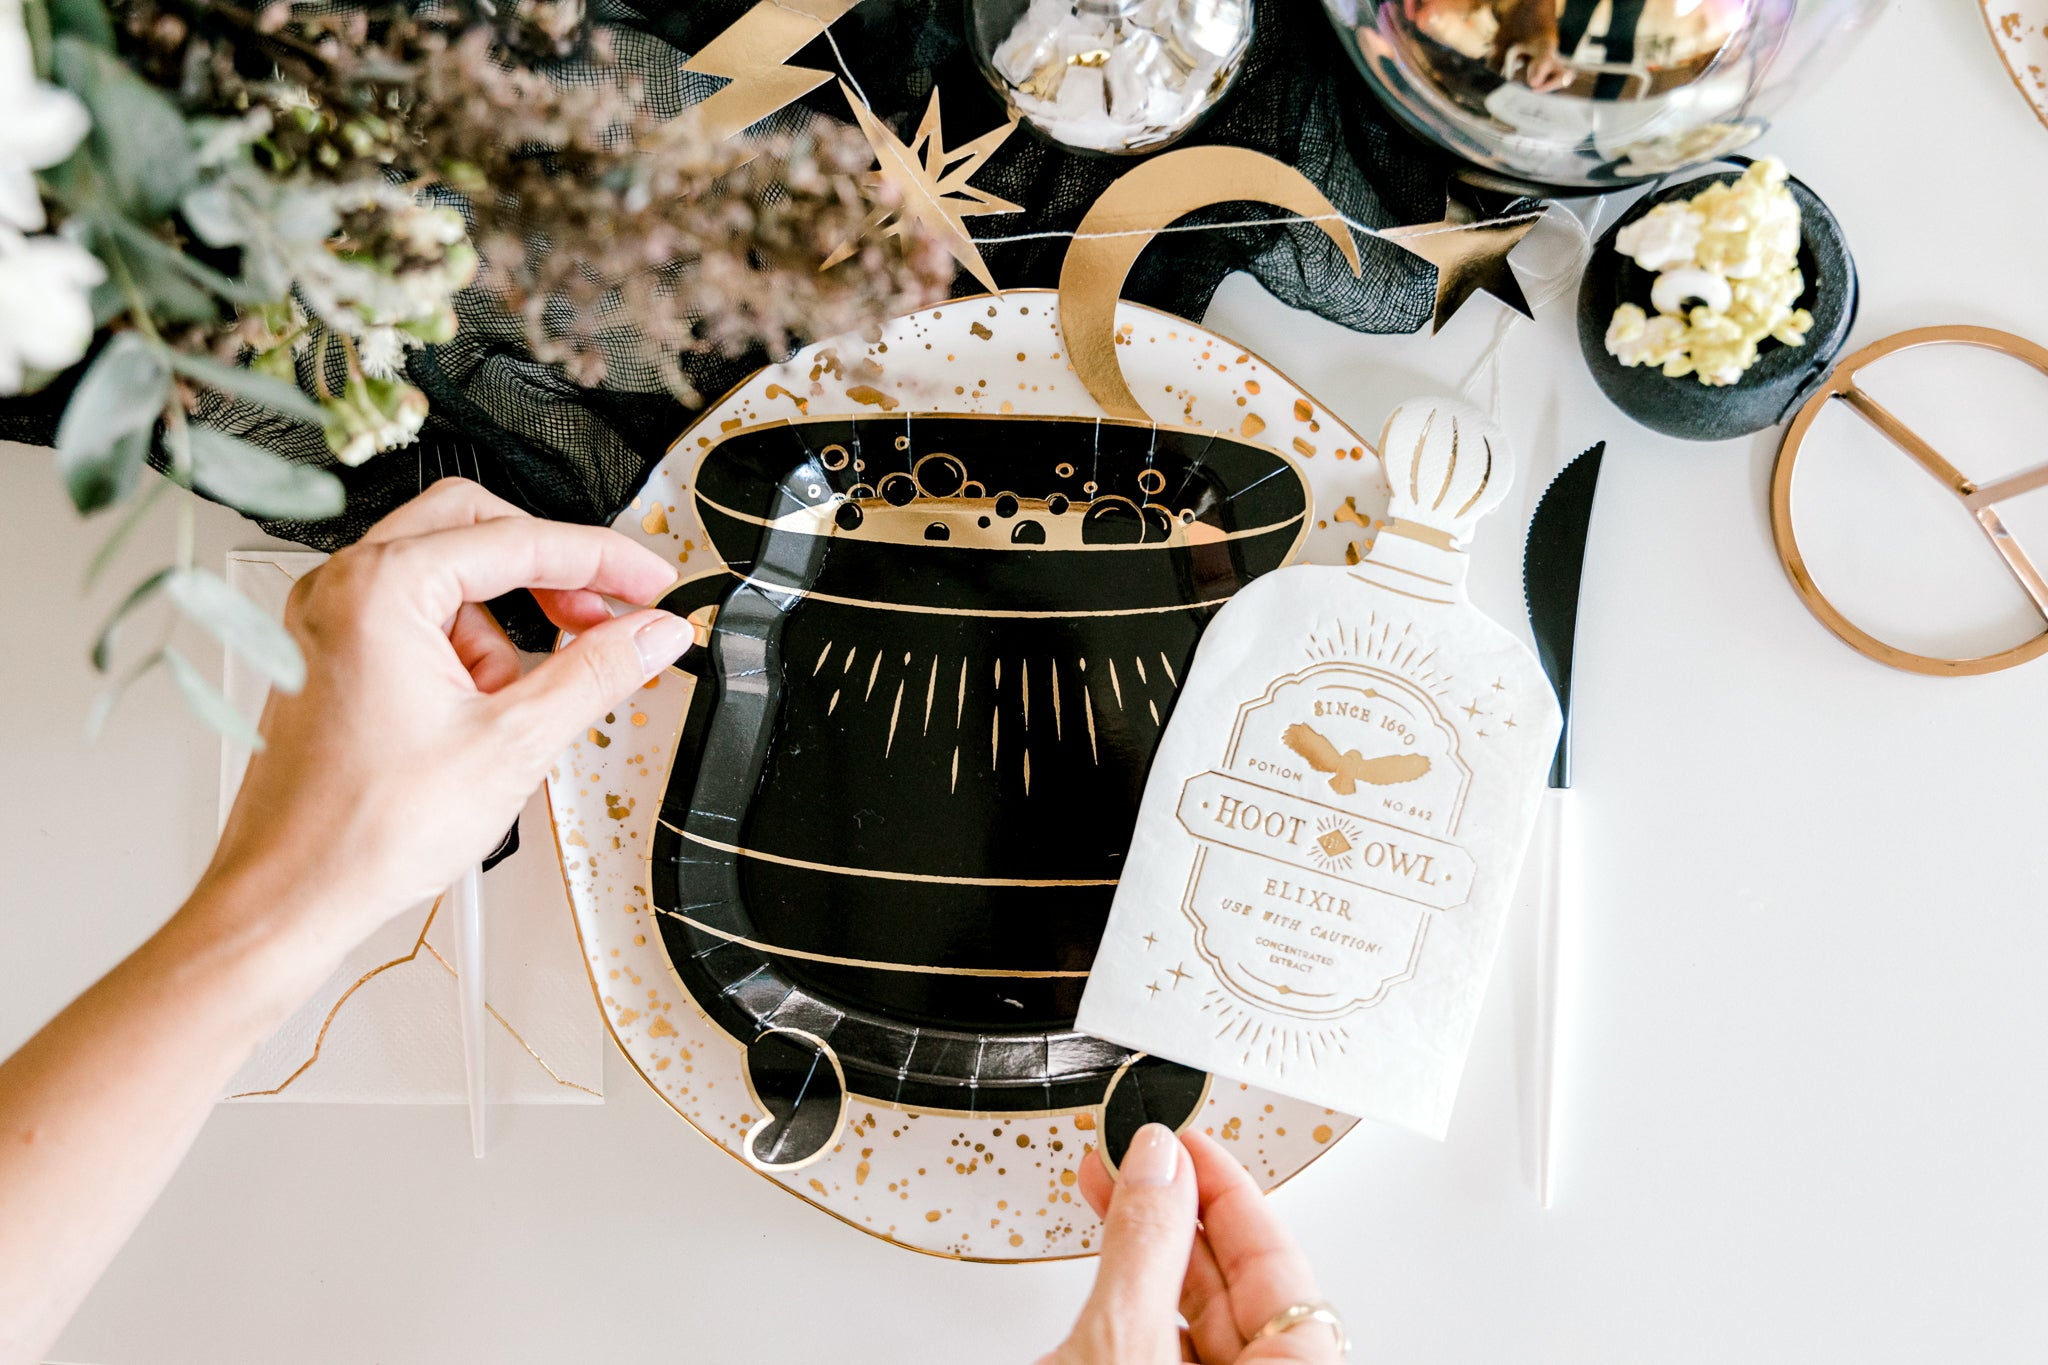 Setting the table with a Harry Potter themed cauldron plate